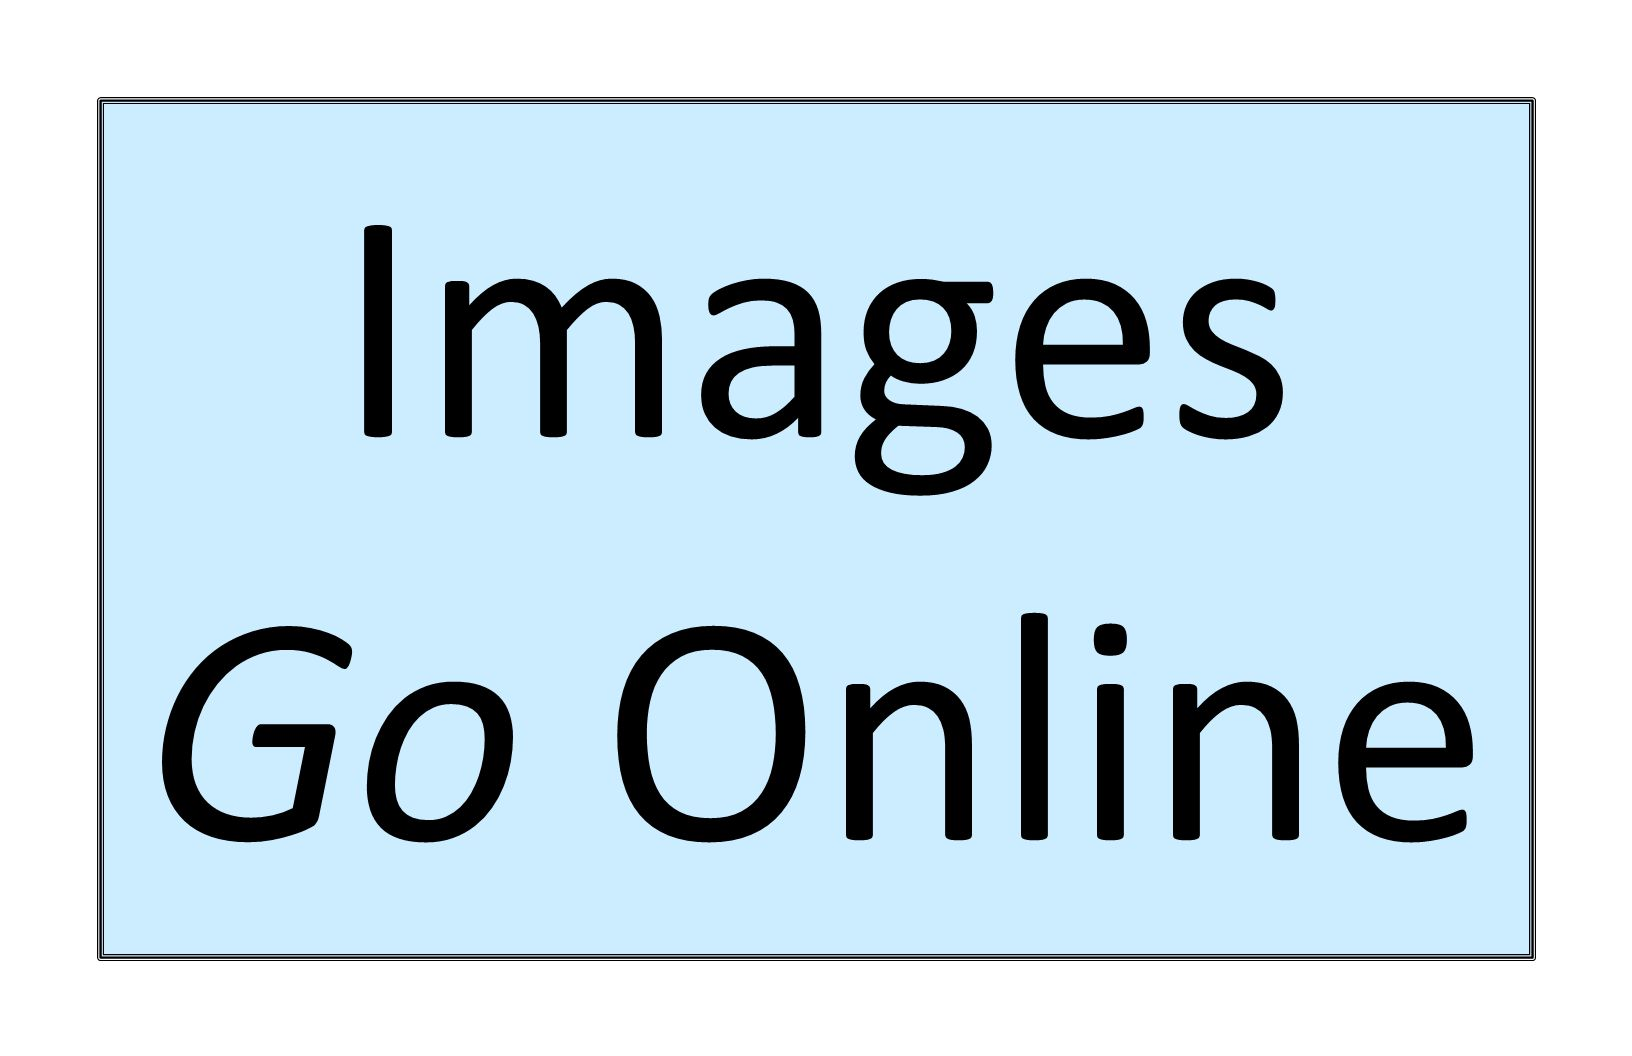 Images Go Online